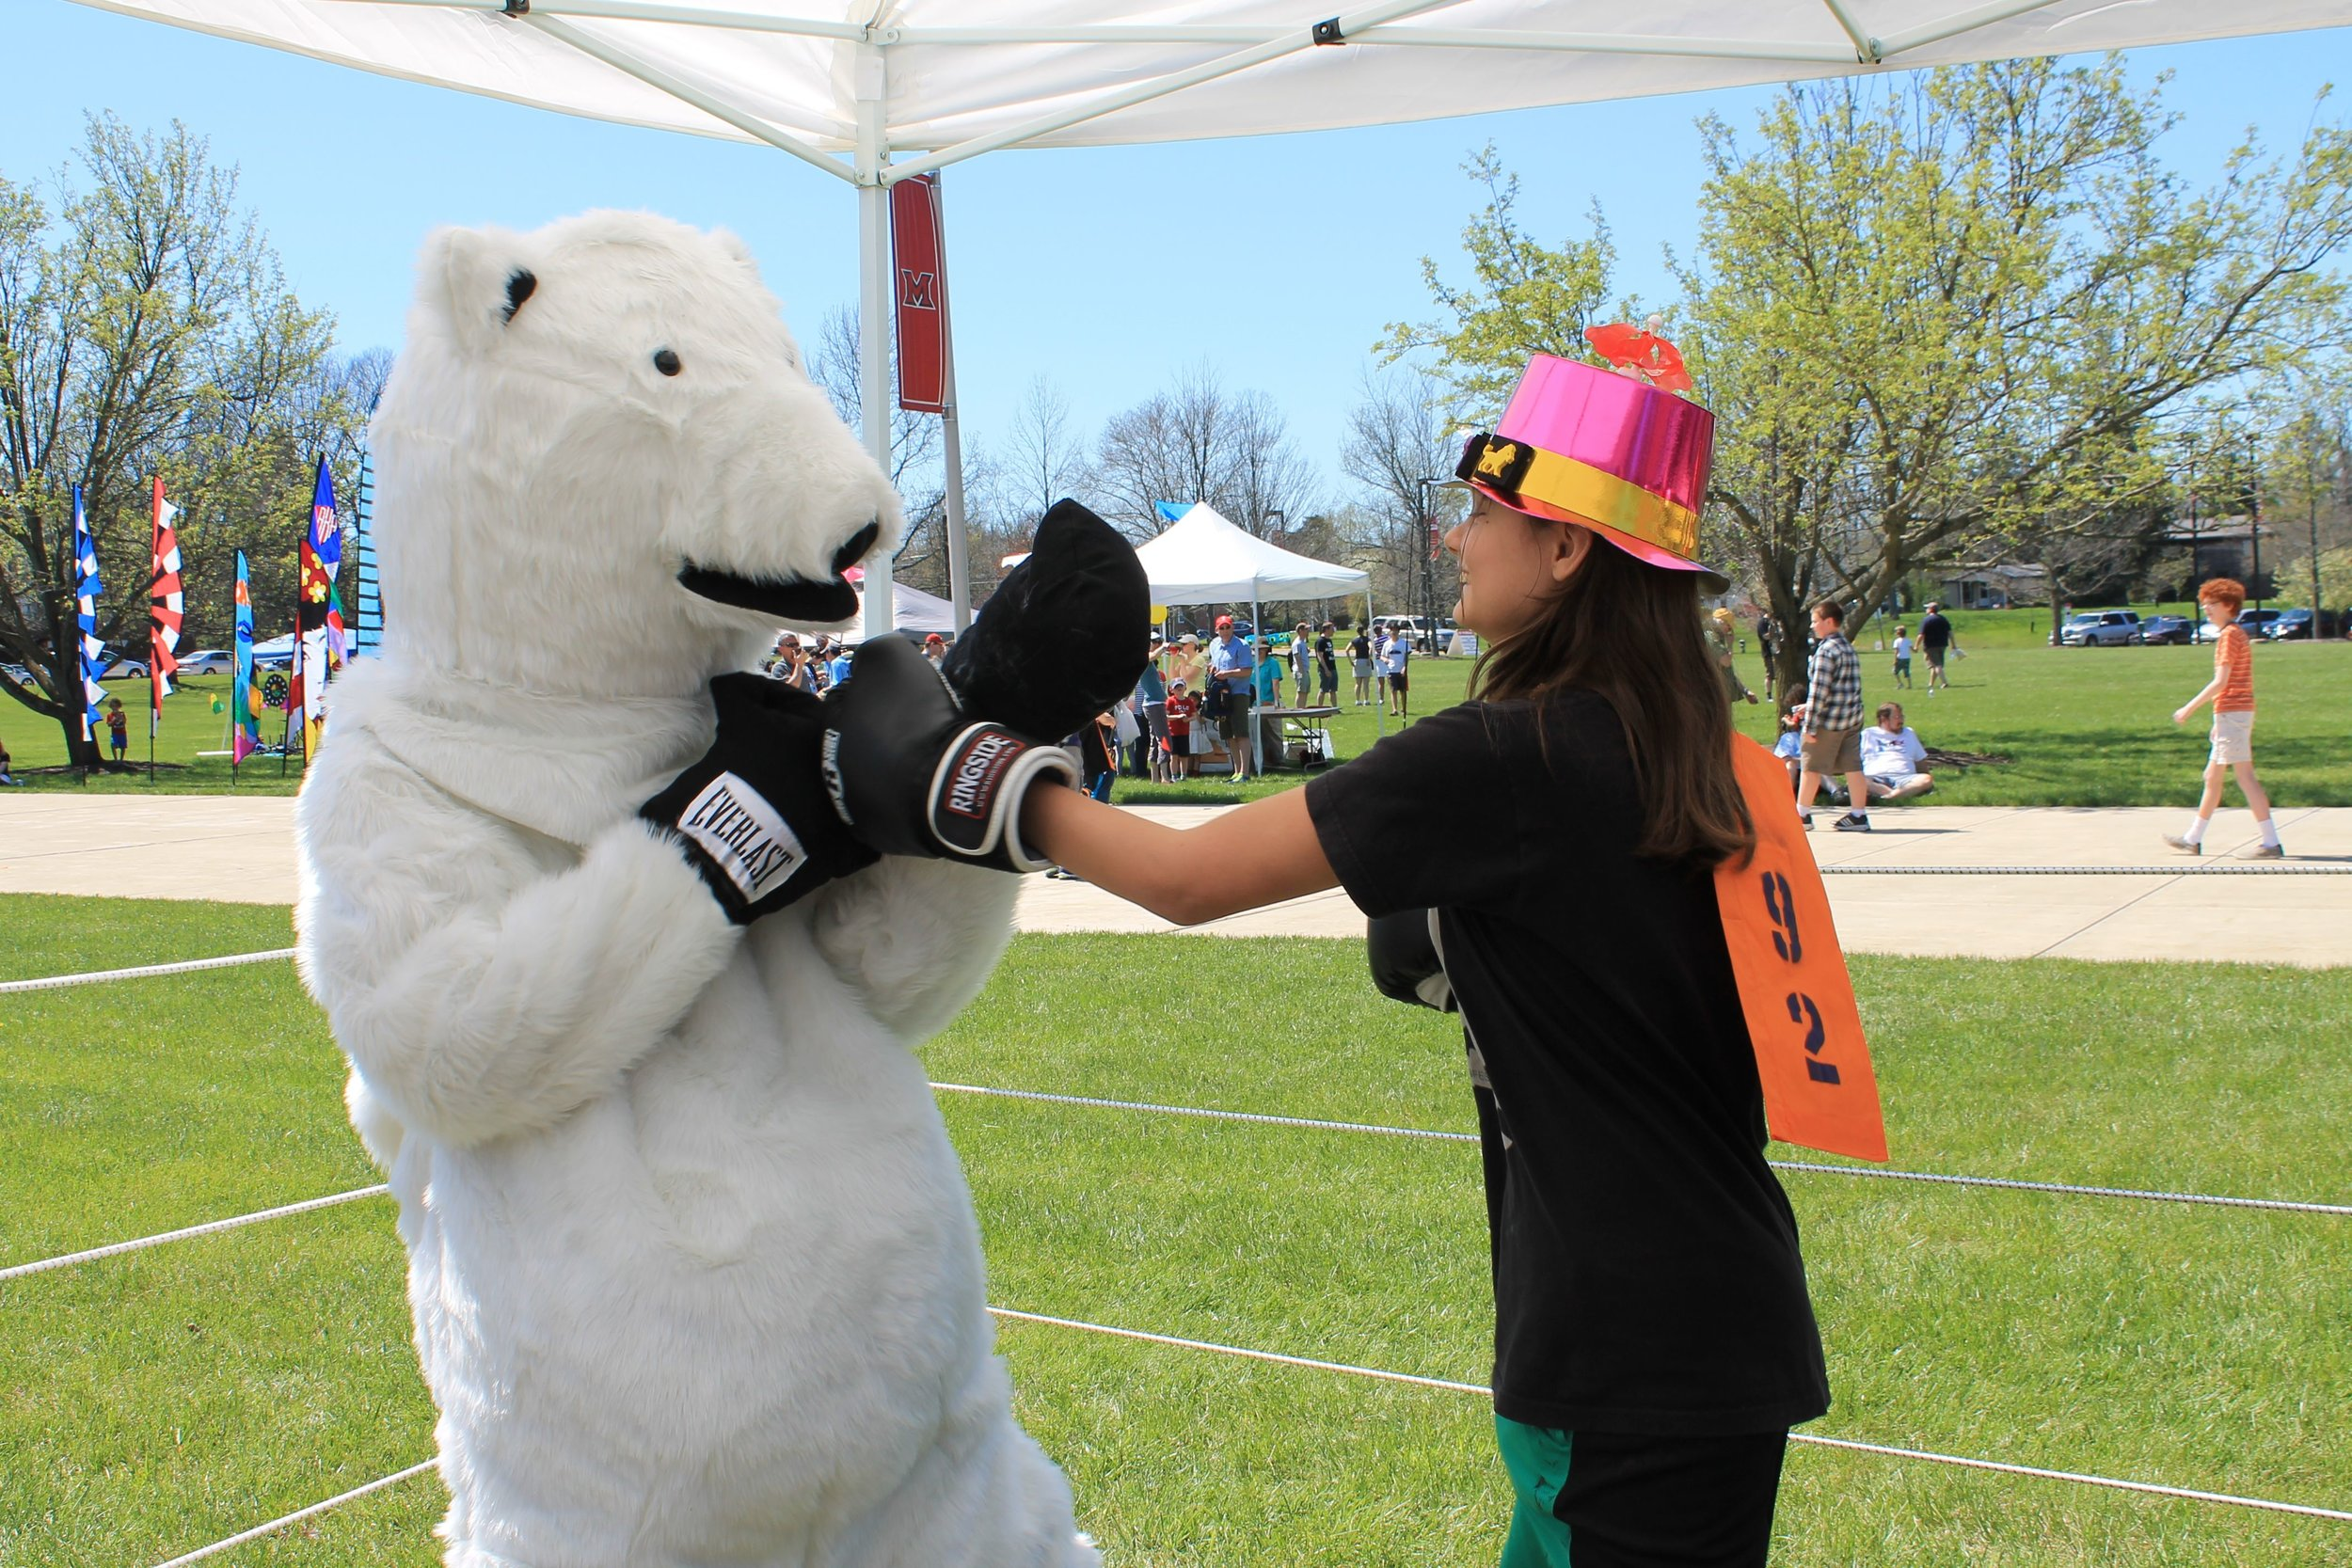 Christopher, our bear, was such a sport to be in that hot suit on a warm spring day, letting children punch him with surprising vigor.